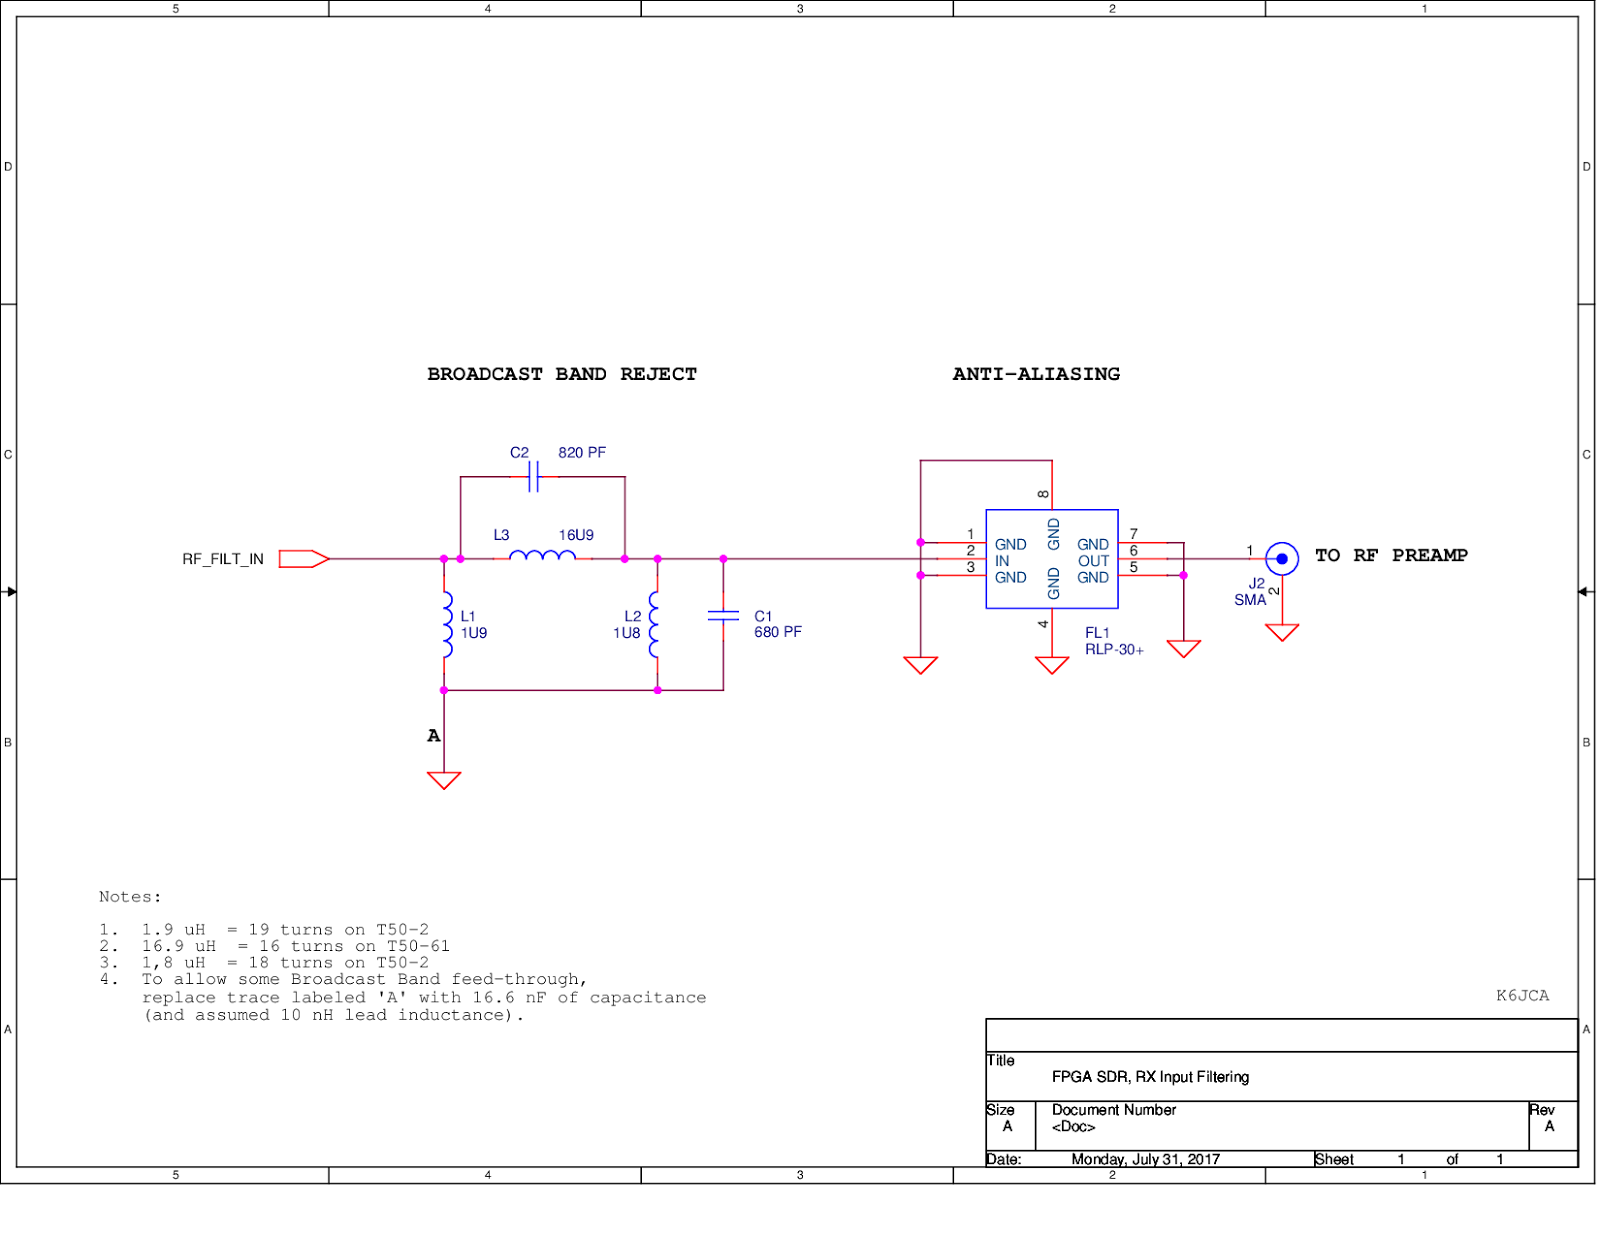 K6jca An Fpga Sdr Hf Transceiver Part 7 Schematics Rx And Tx Schematic Of The Rs232 Adapter Click To Enlarge On Image